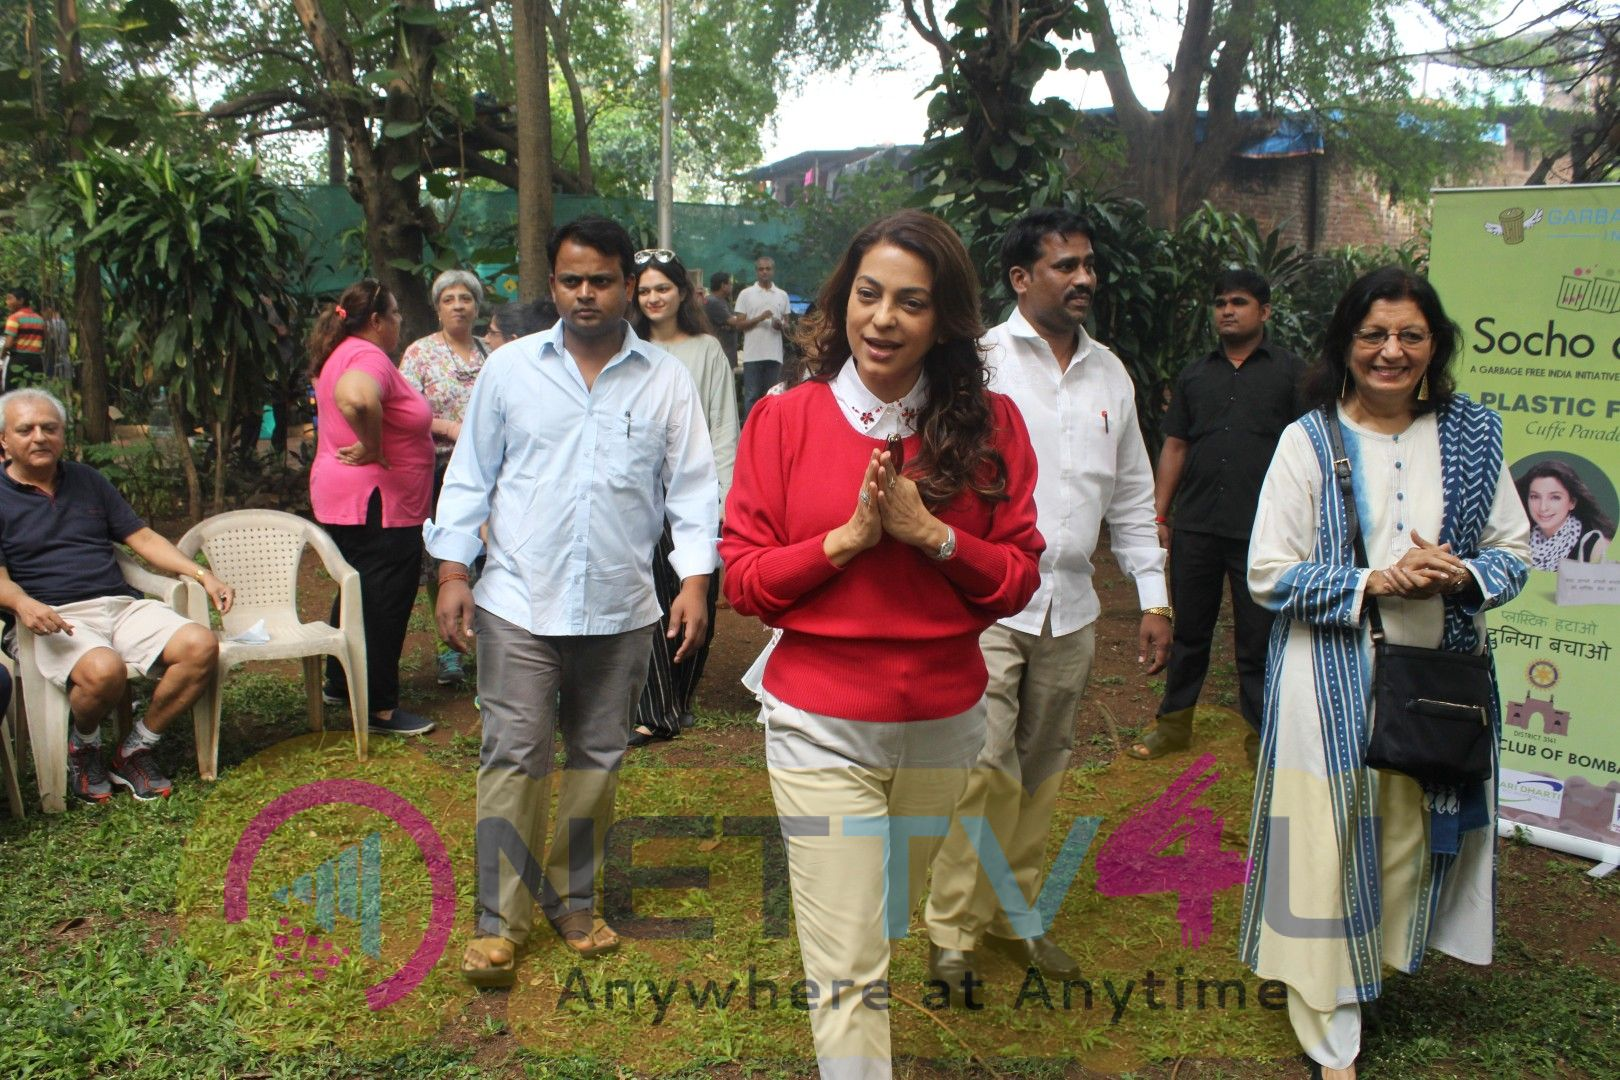 Juhi Chawla Support Plastic Free Cuffe Parade Campaign Images